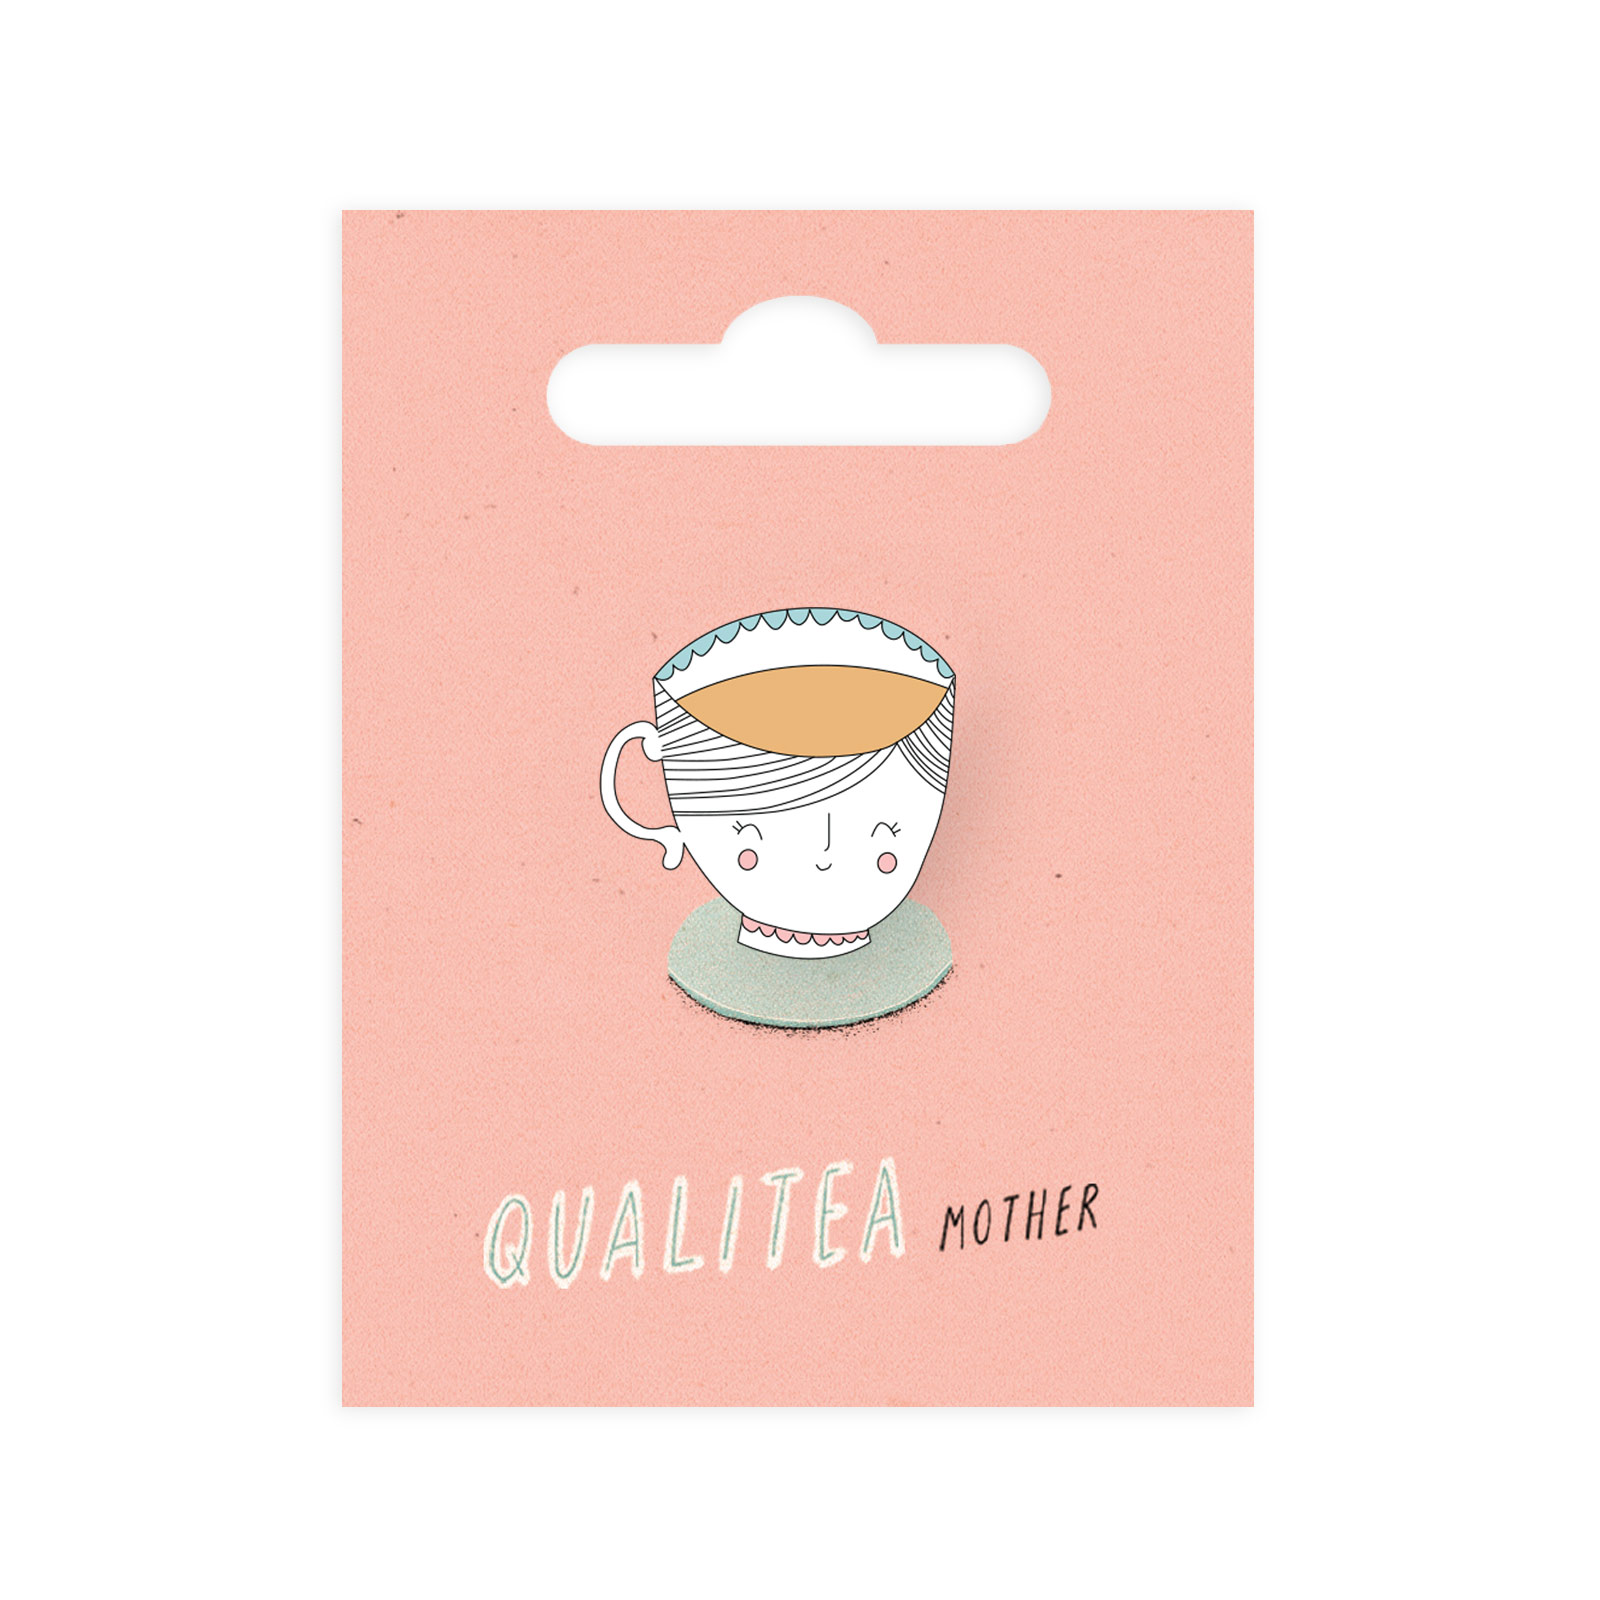 QUALITEA MOTHER ENAMEL PIN - Tell mum how amazing she is with the perfectly coloured cup of tea. No weak milky whiffers here! This pin is the perfect way to tell her you love her